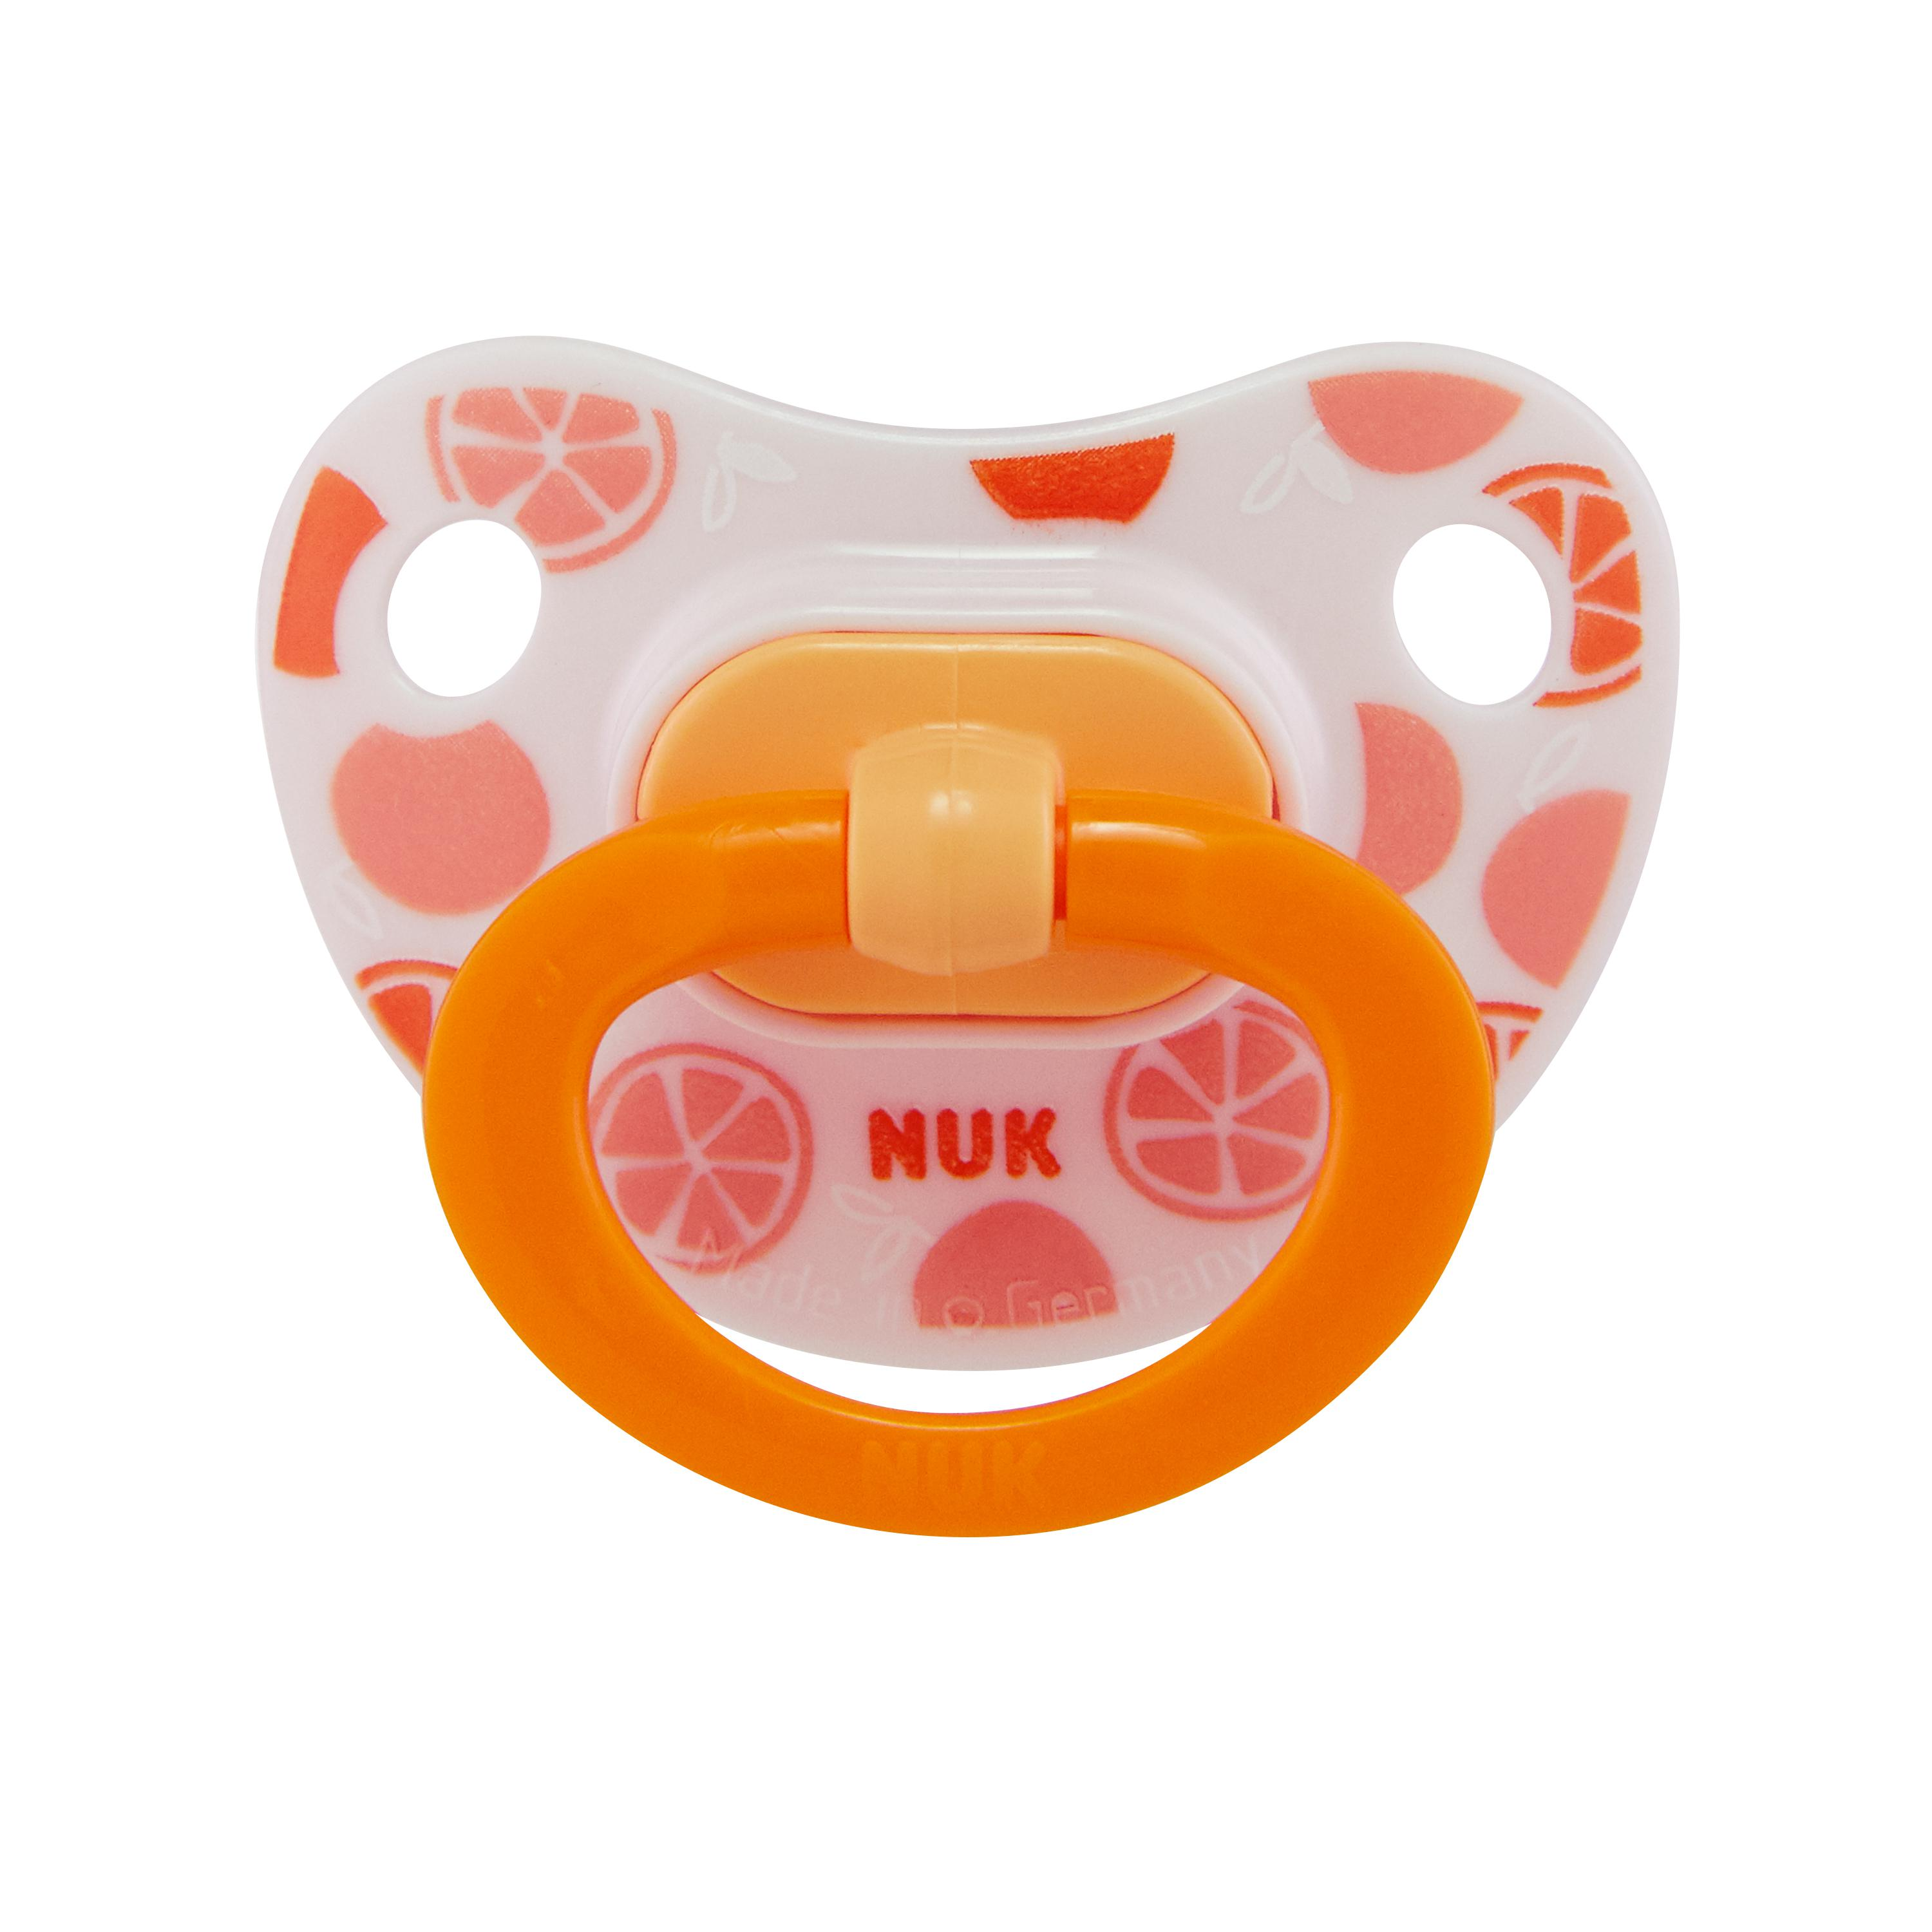 NUK® Orthodontic Pacifiers, 18-36 Months, 2-Pack Product Image 1 of 7